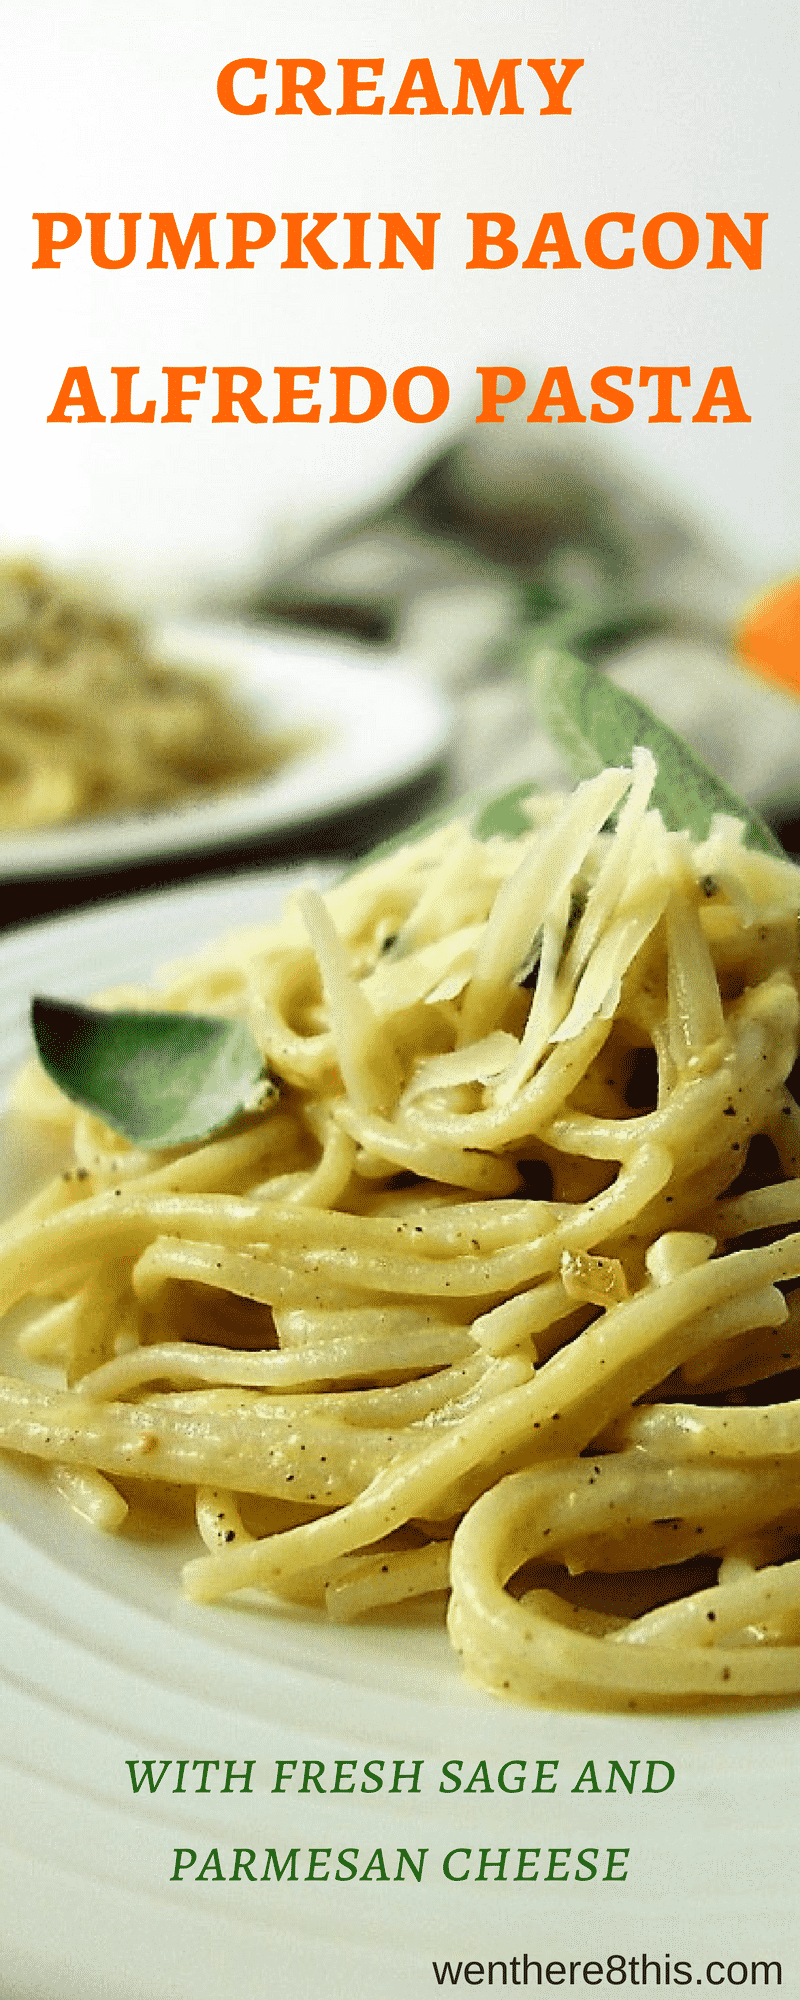 This rich and delicious Creamy Bacon Alfredo Pasta is the perfect autumn dish! Made with gluten free pasta, fresh pumpkin, sage and Parmesan cheese!pumpkin recipes | pumpkin alfredo easy | gluten free pumpkin recipes | 20 minute pasta recipes | creamy pumpkin alfredo | pumpkin pasta | Pumpkin alfredo sauce | gluten free pumpkin alfredo | pumpkin pasta sauce | fall recipes#Tresomega #OrganicsForLife